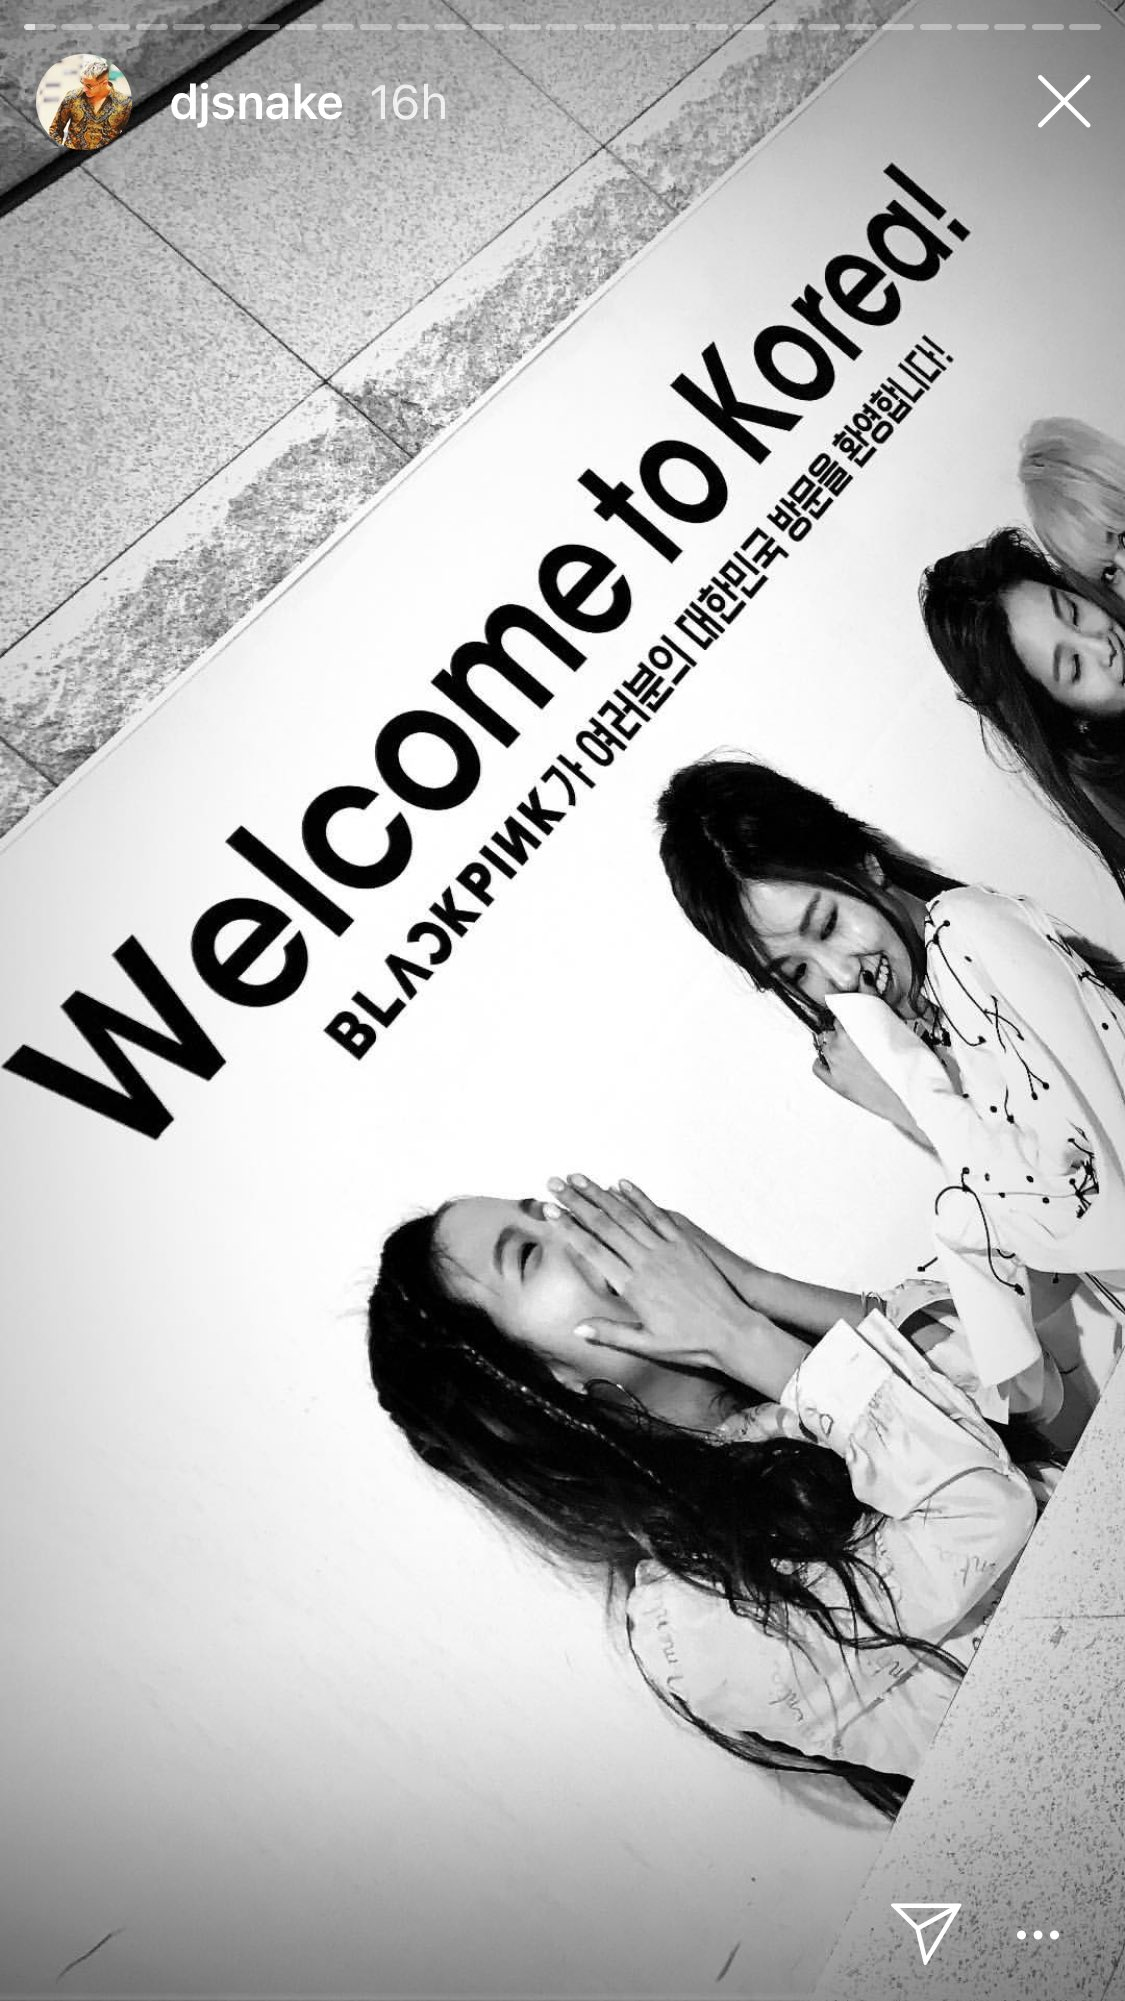 #BLACKPINK by @djsnake's Instagram https://t.co/56SQL9kLfC